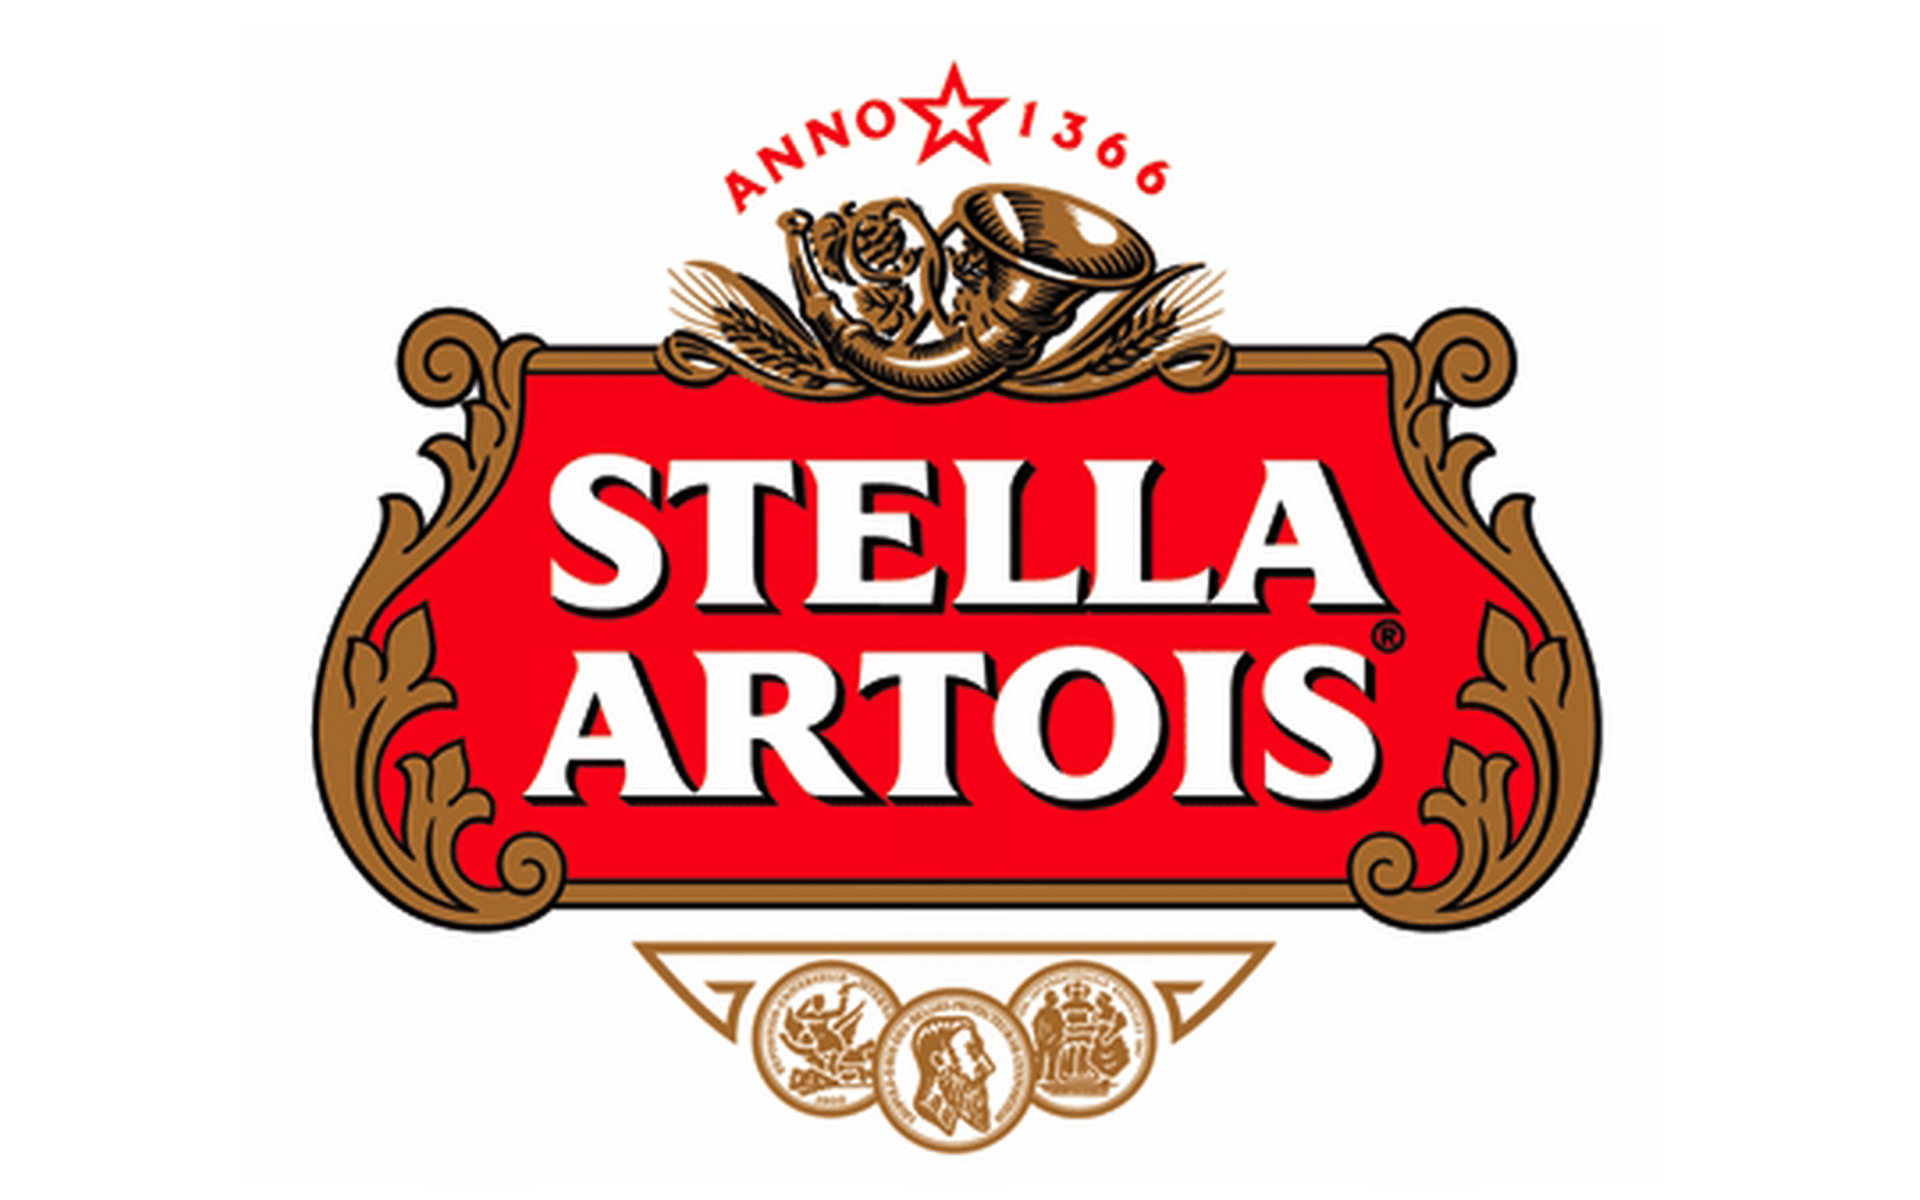 stella-artois-logo-wallpapers_35372_1920x1200.jpg